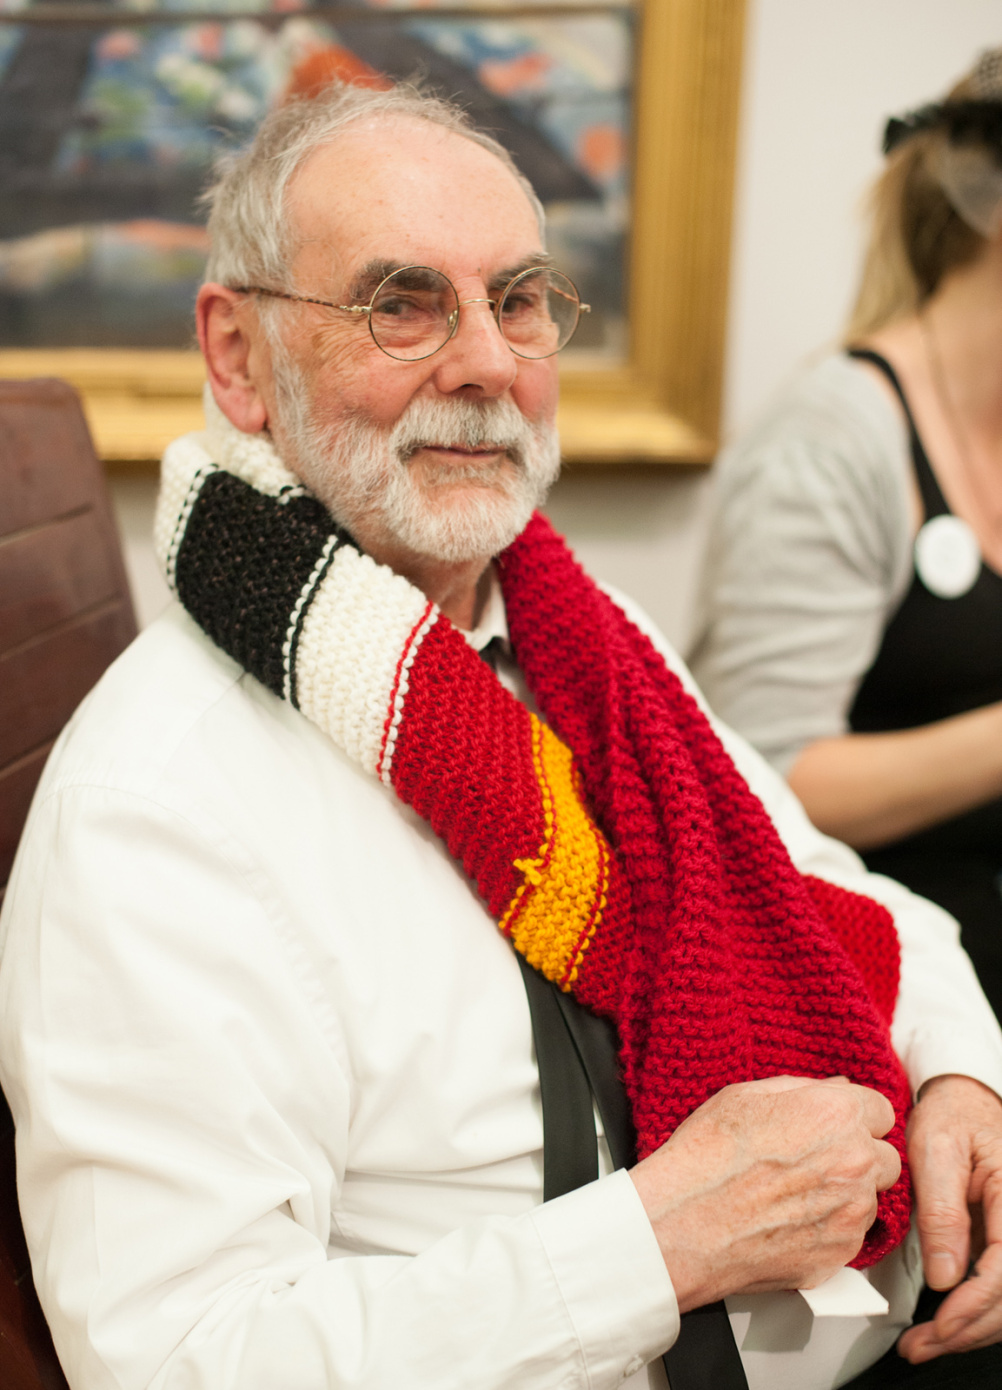 Jim Giles, with scarf